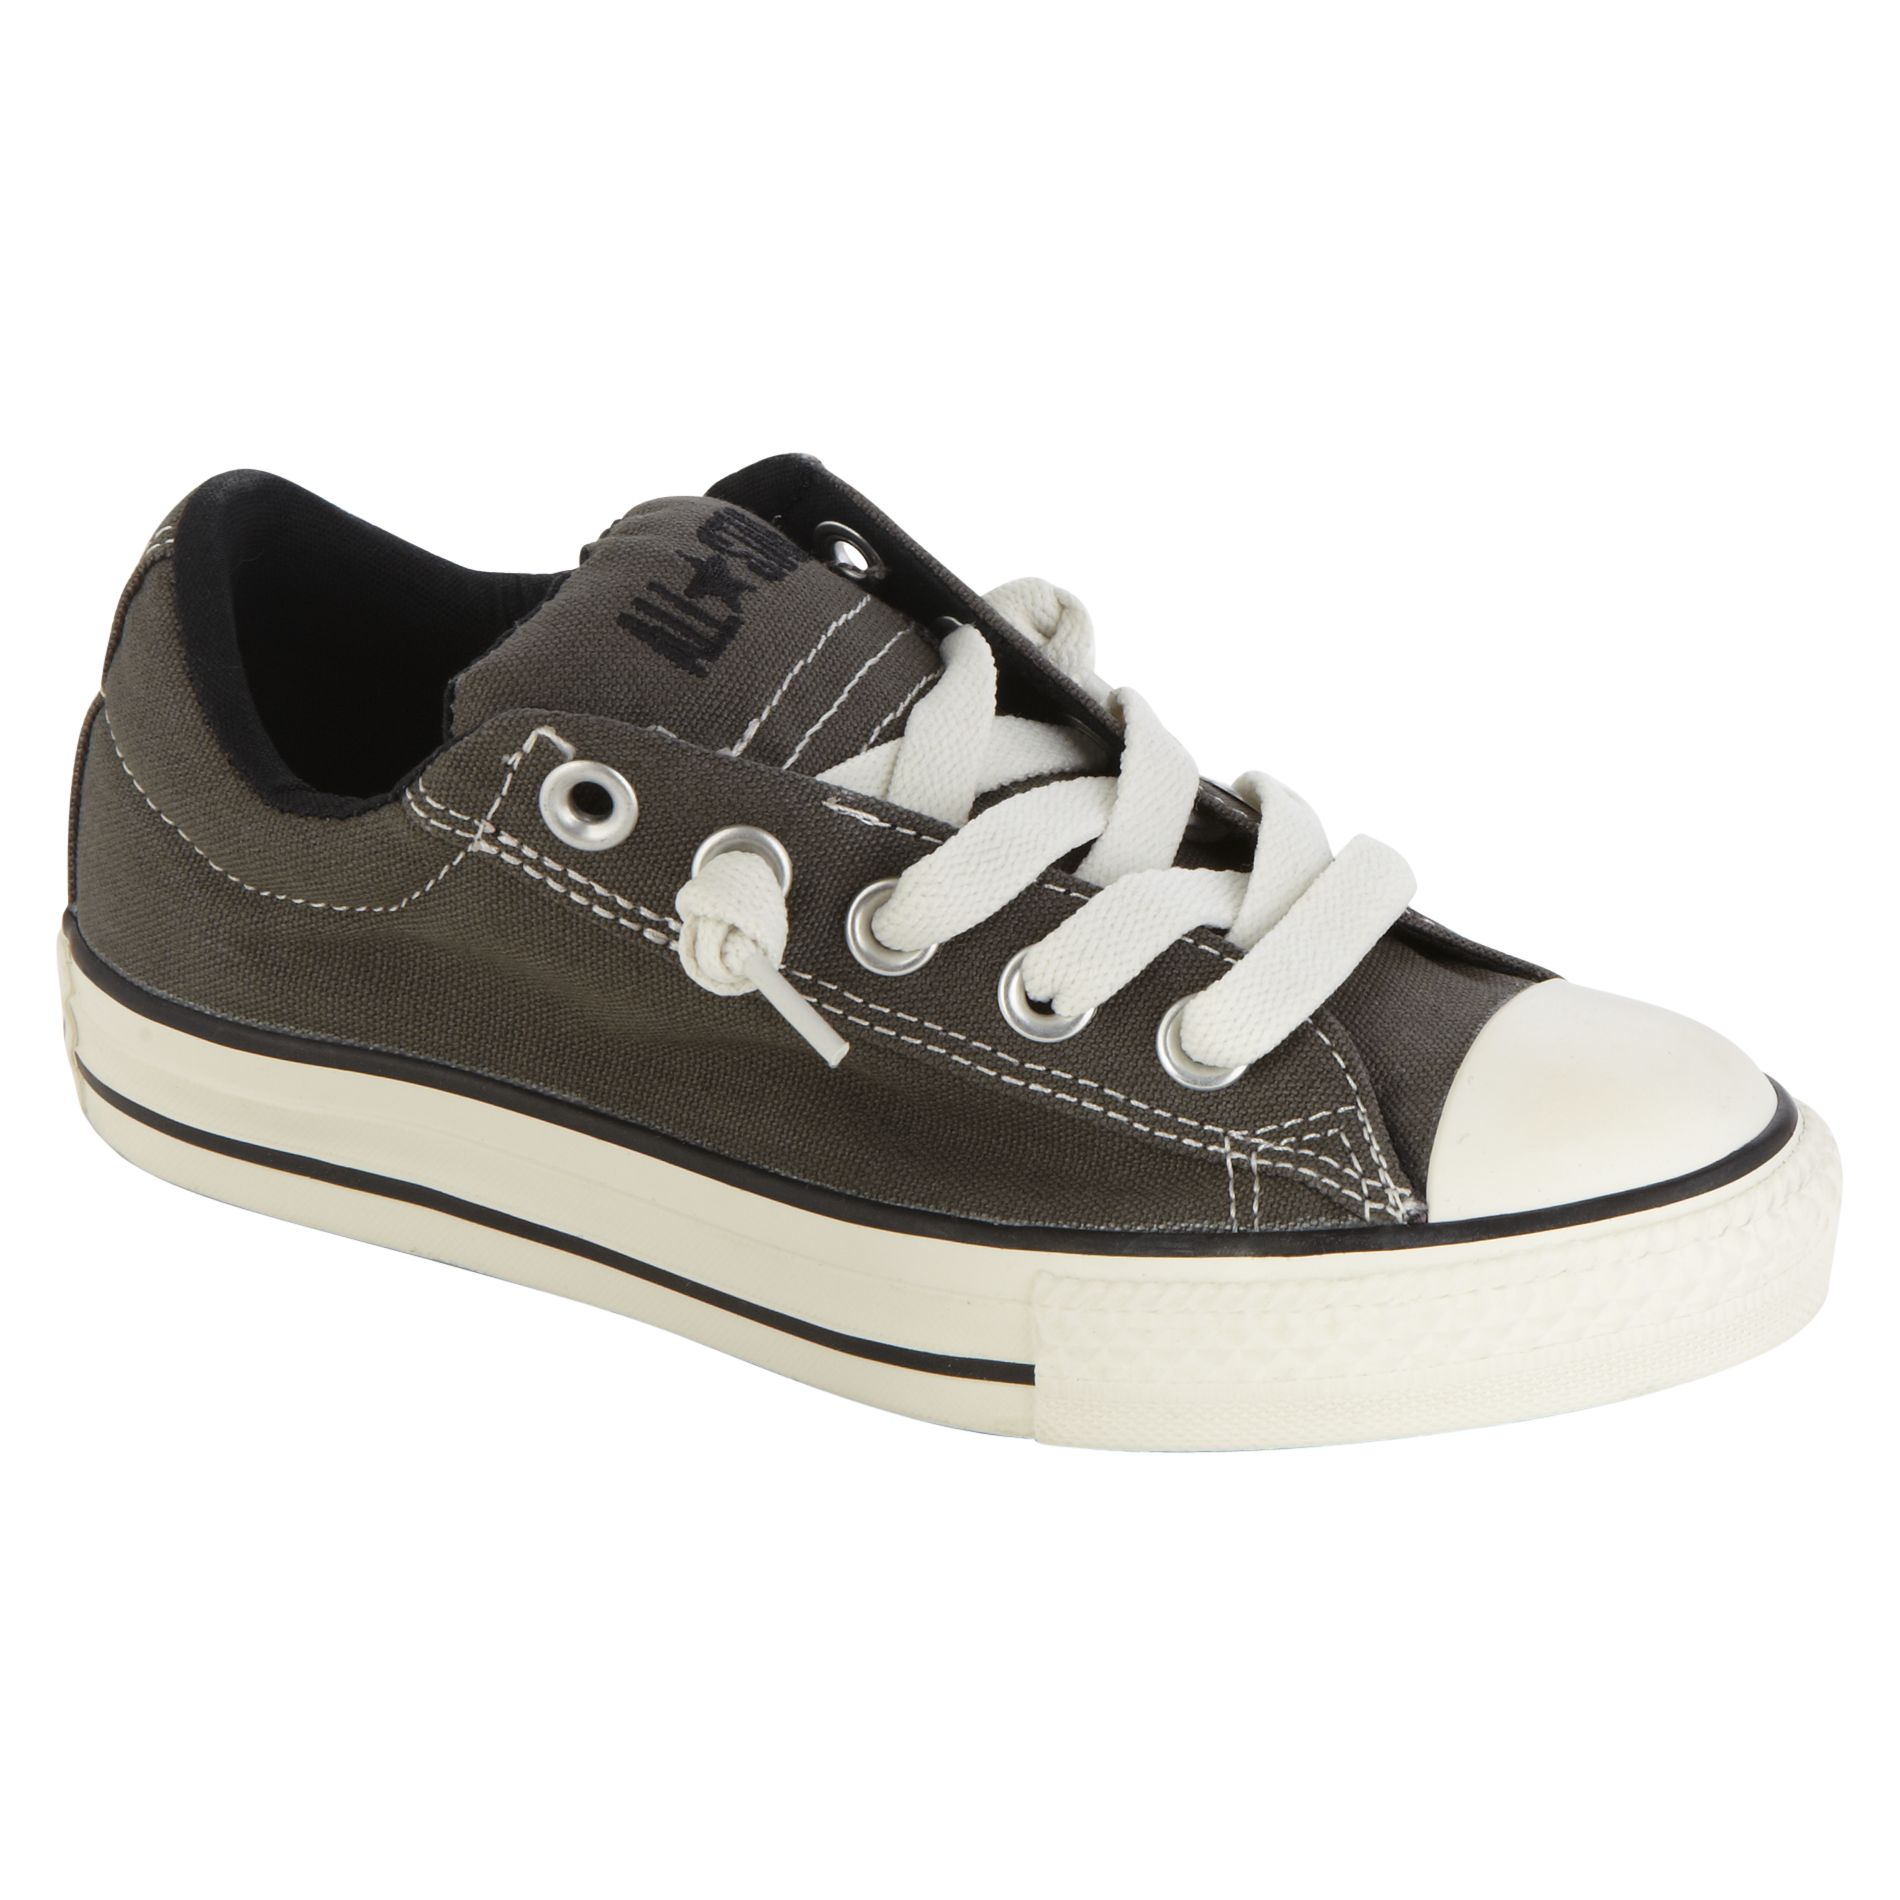 Converse Youth Boys Chuck Taylor All Star Street Ox Grey Medium Widths Gray 3 Youth image